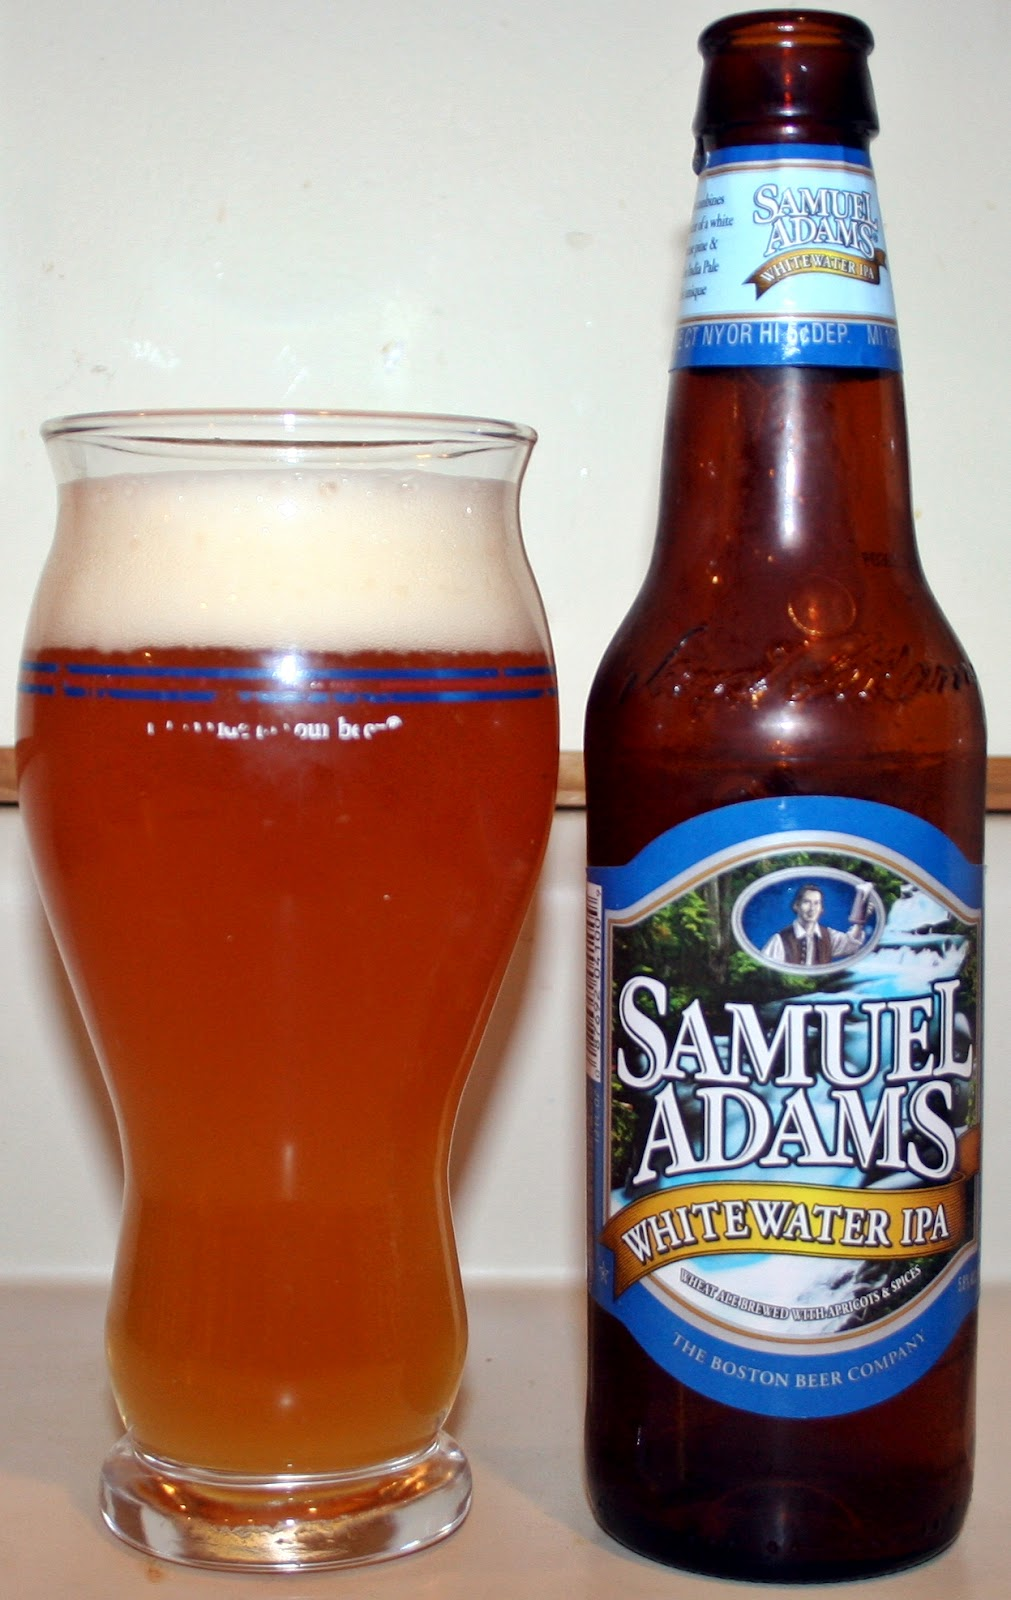 firs it was the black ipa and now a white ipa combining a witbier with an american ipa this makes for an interesting combination and one that - White Christmas Sam Adams